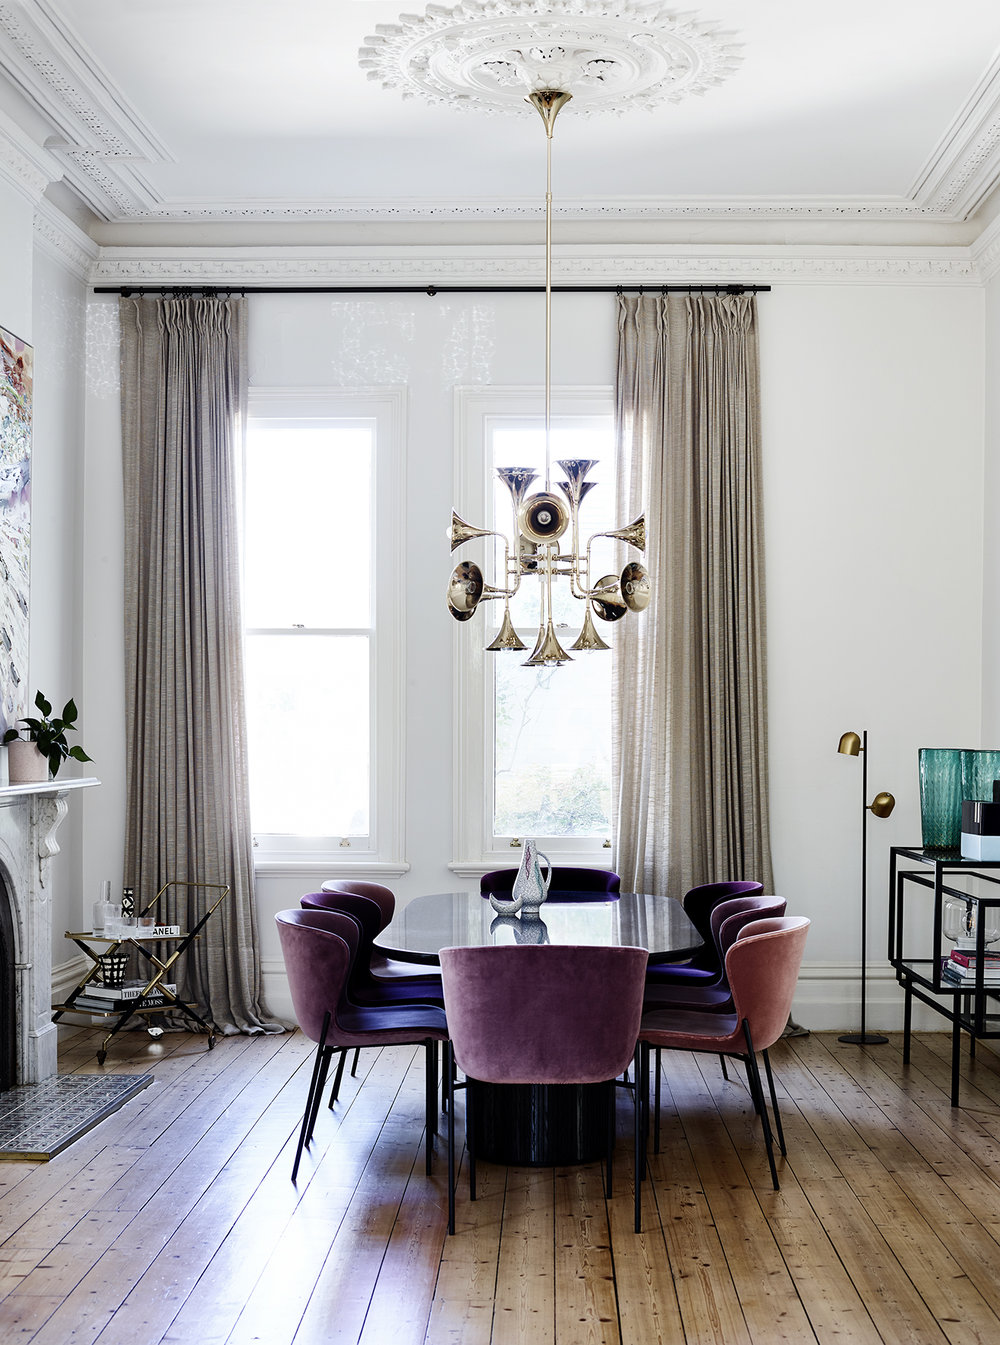 Room of the Week- Formal Living Room Becomes Fashionably Edgy formal living room Room of the Week: Formal Living Room Becomes Fashionably Edgy Room of the Week Formal Living Room Becomes Fashionably Edgy 6